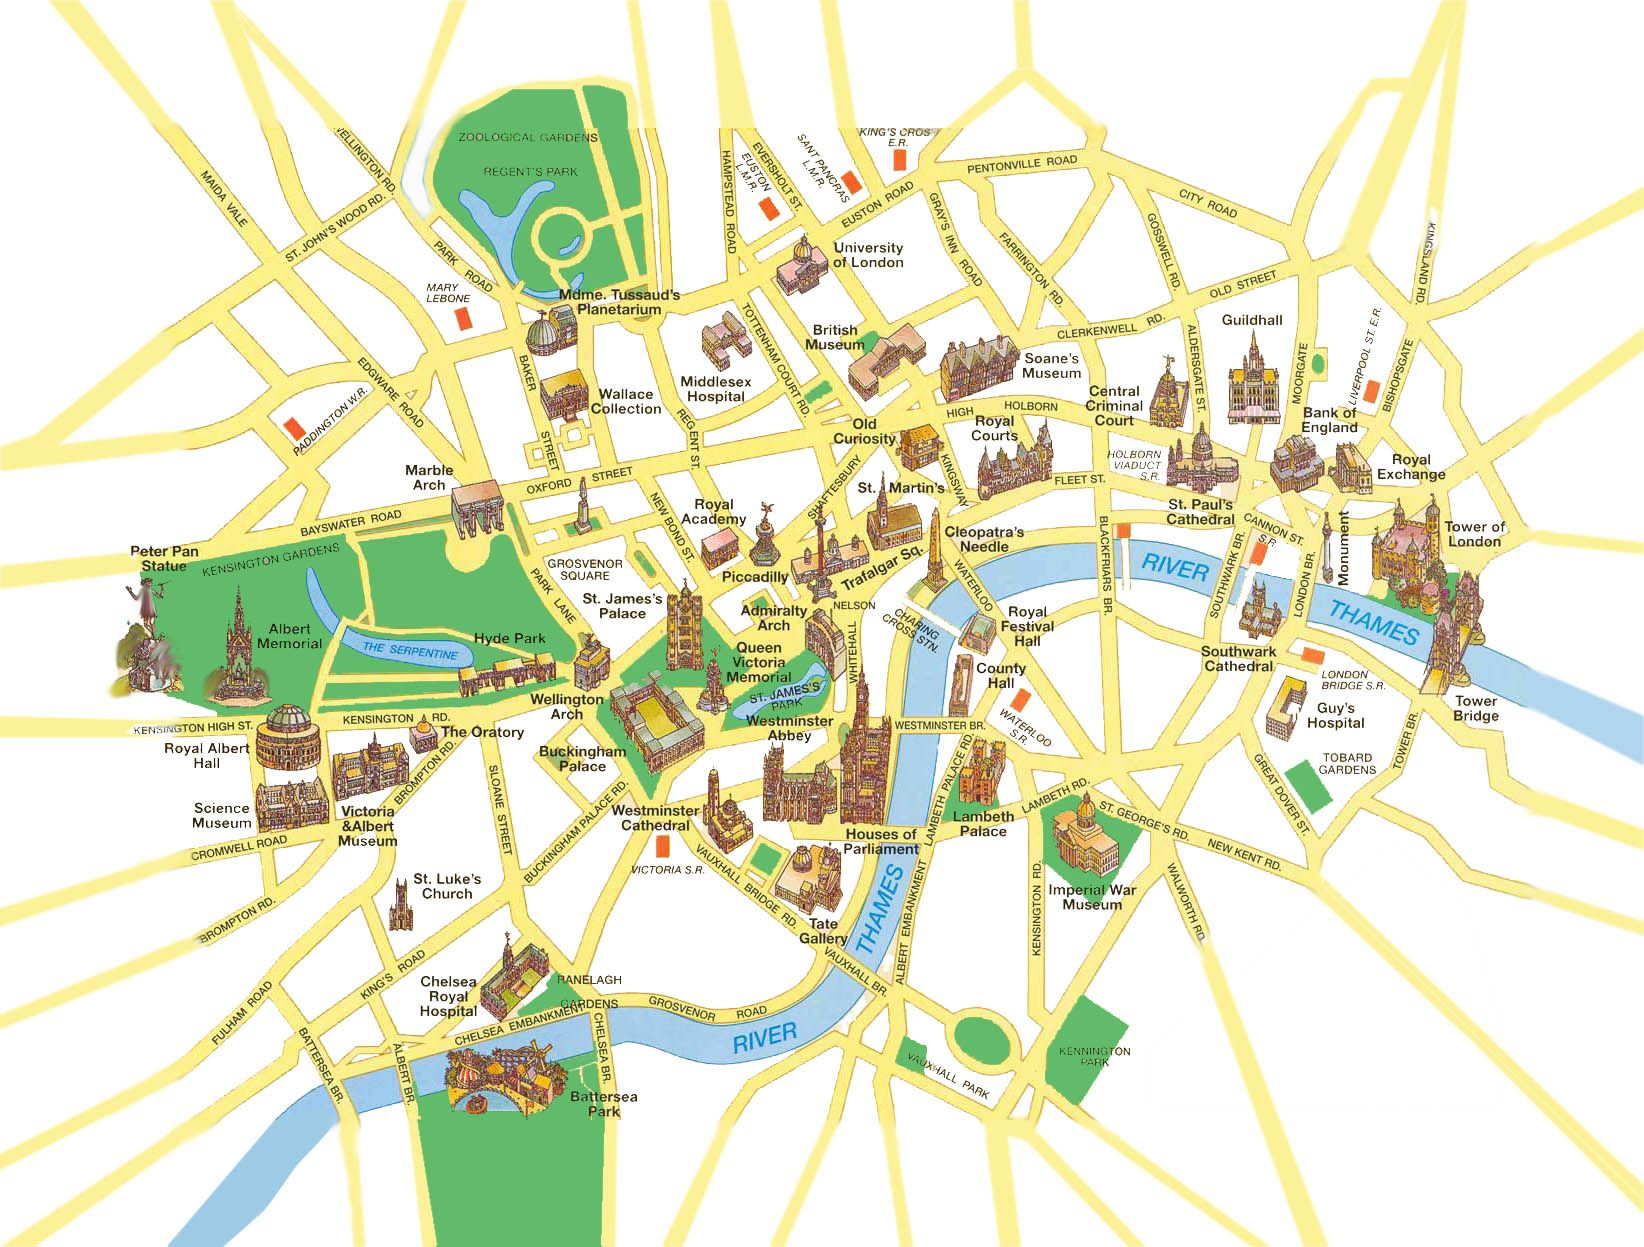 Paris top tourist attractions map Landmarks aerial birds eye view – Map of Tourist Attractions in Paris